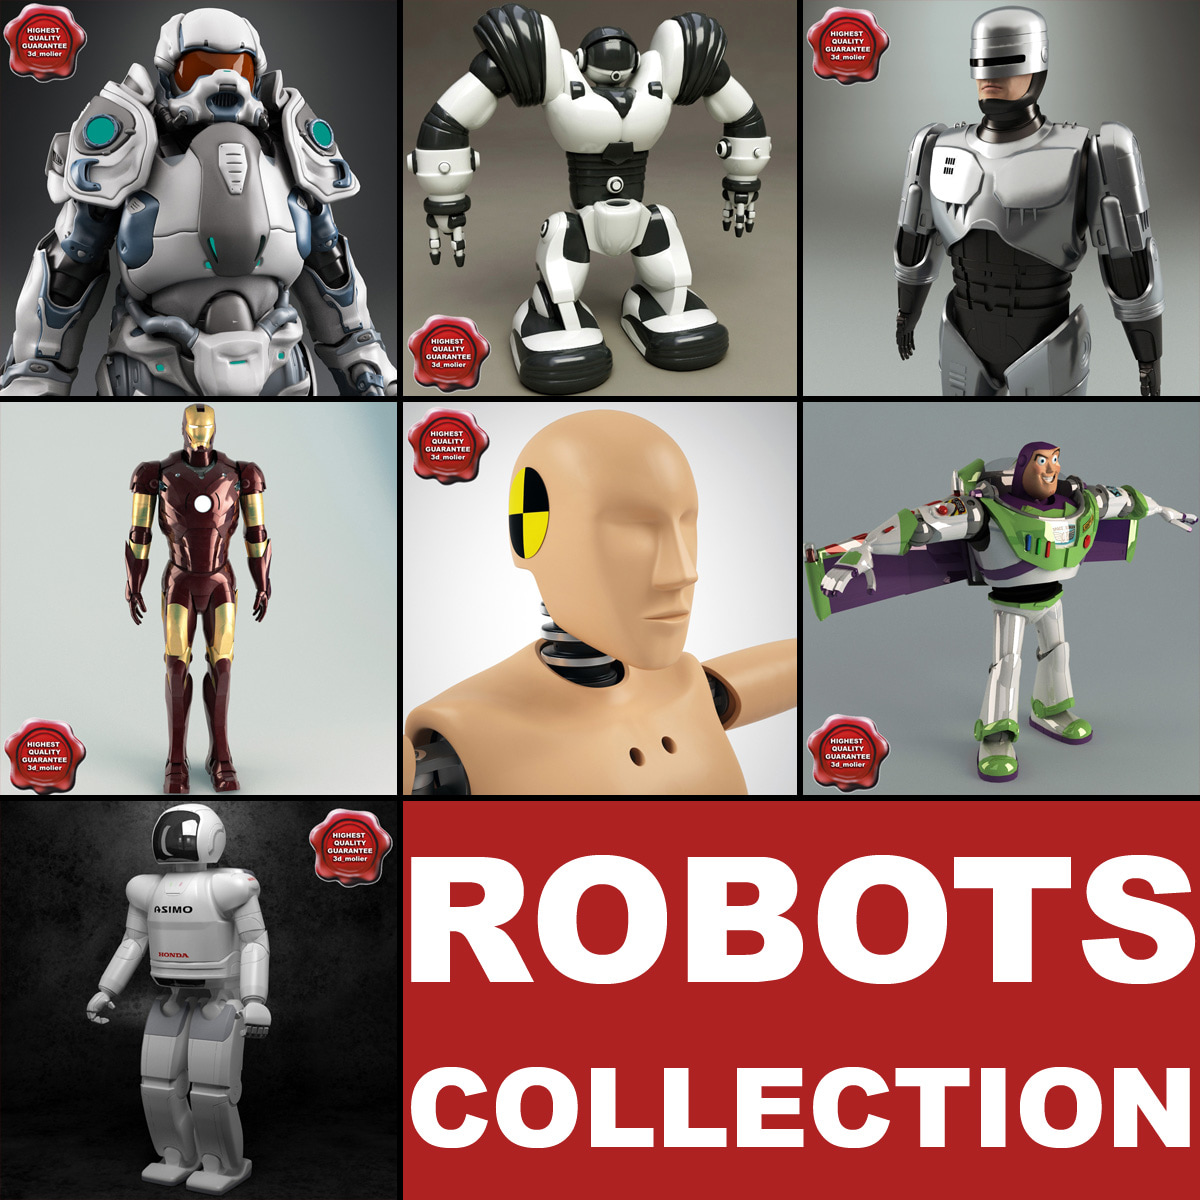 Robots_Collection_V4_000.jpg